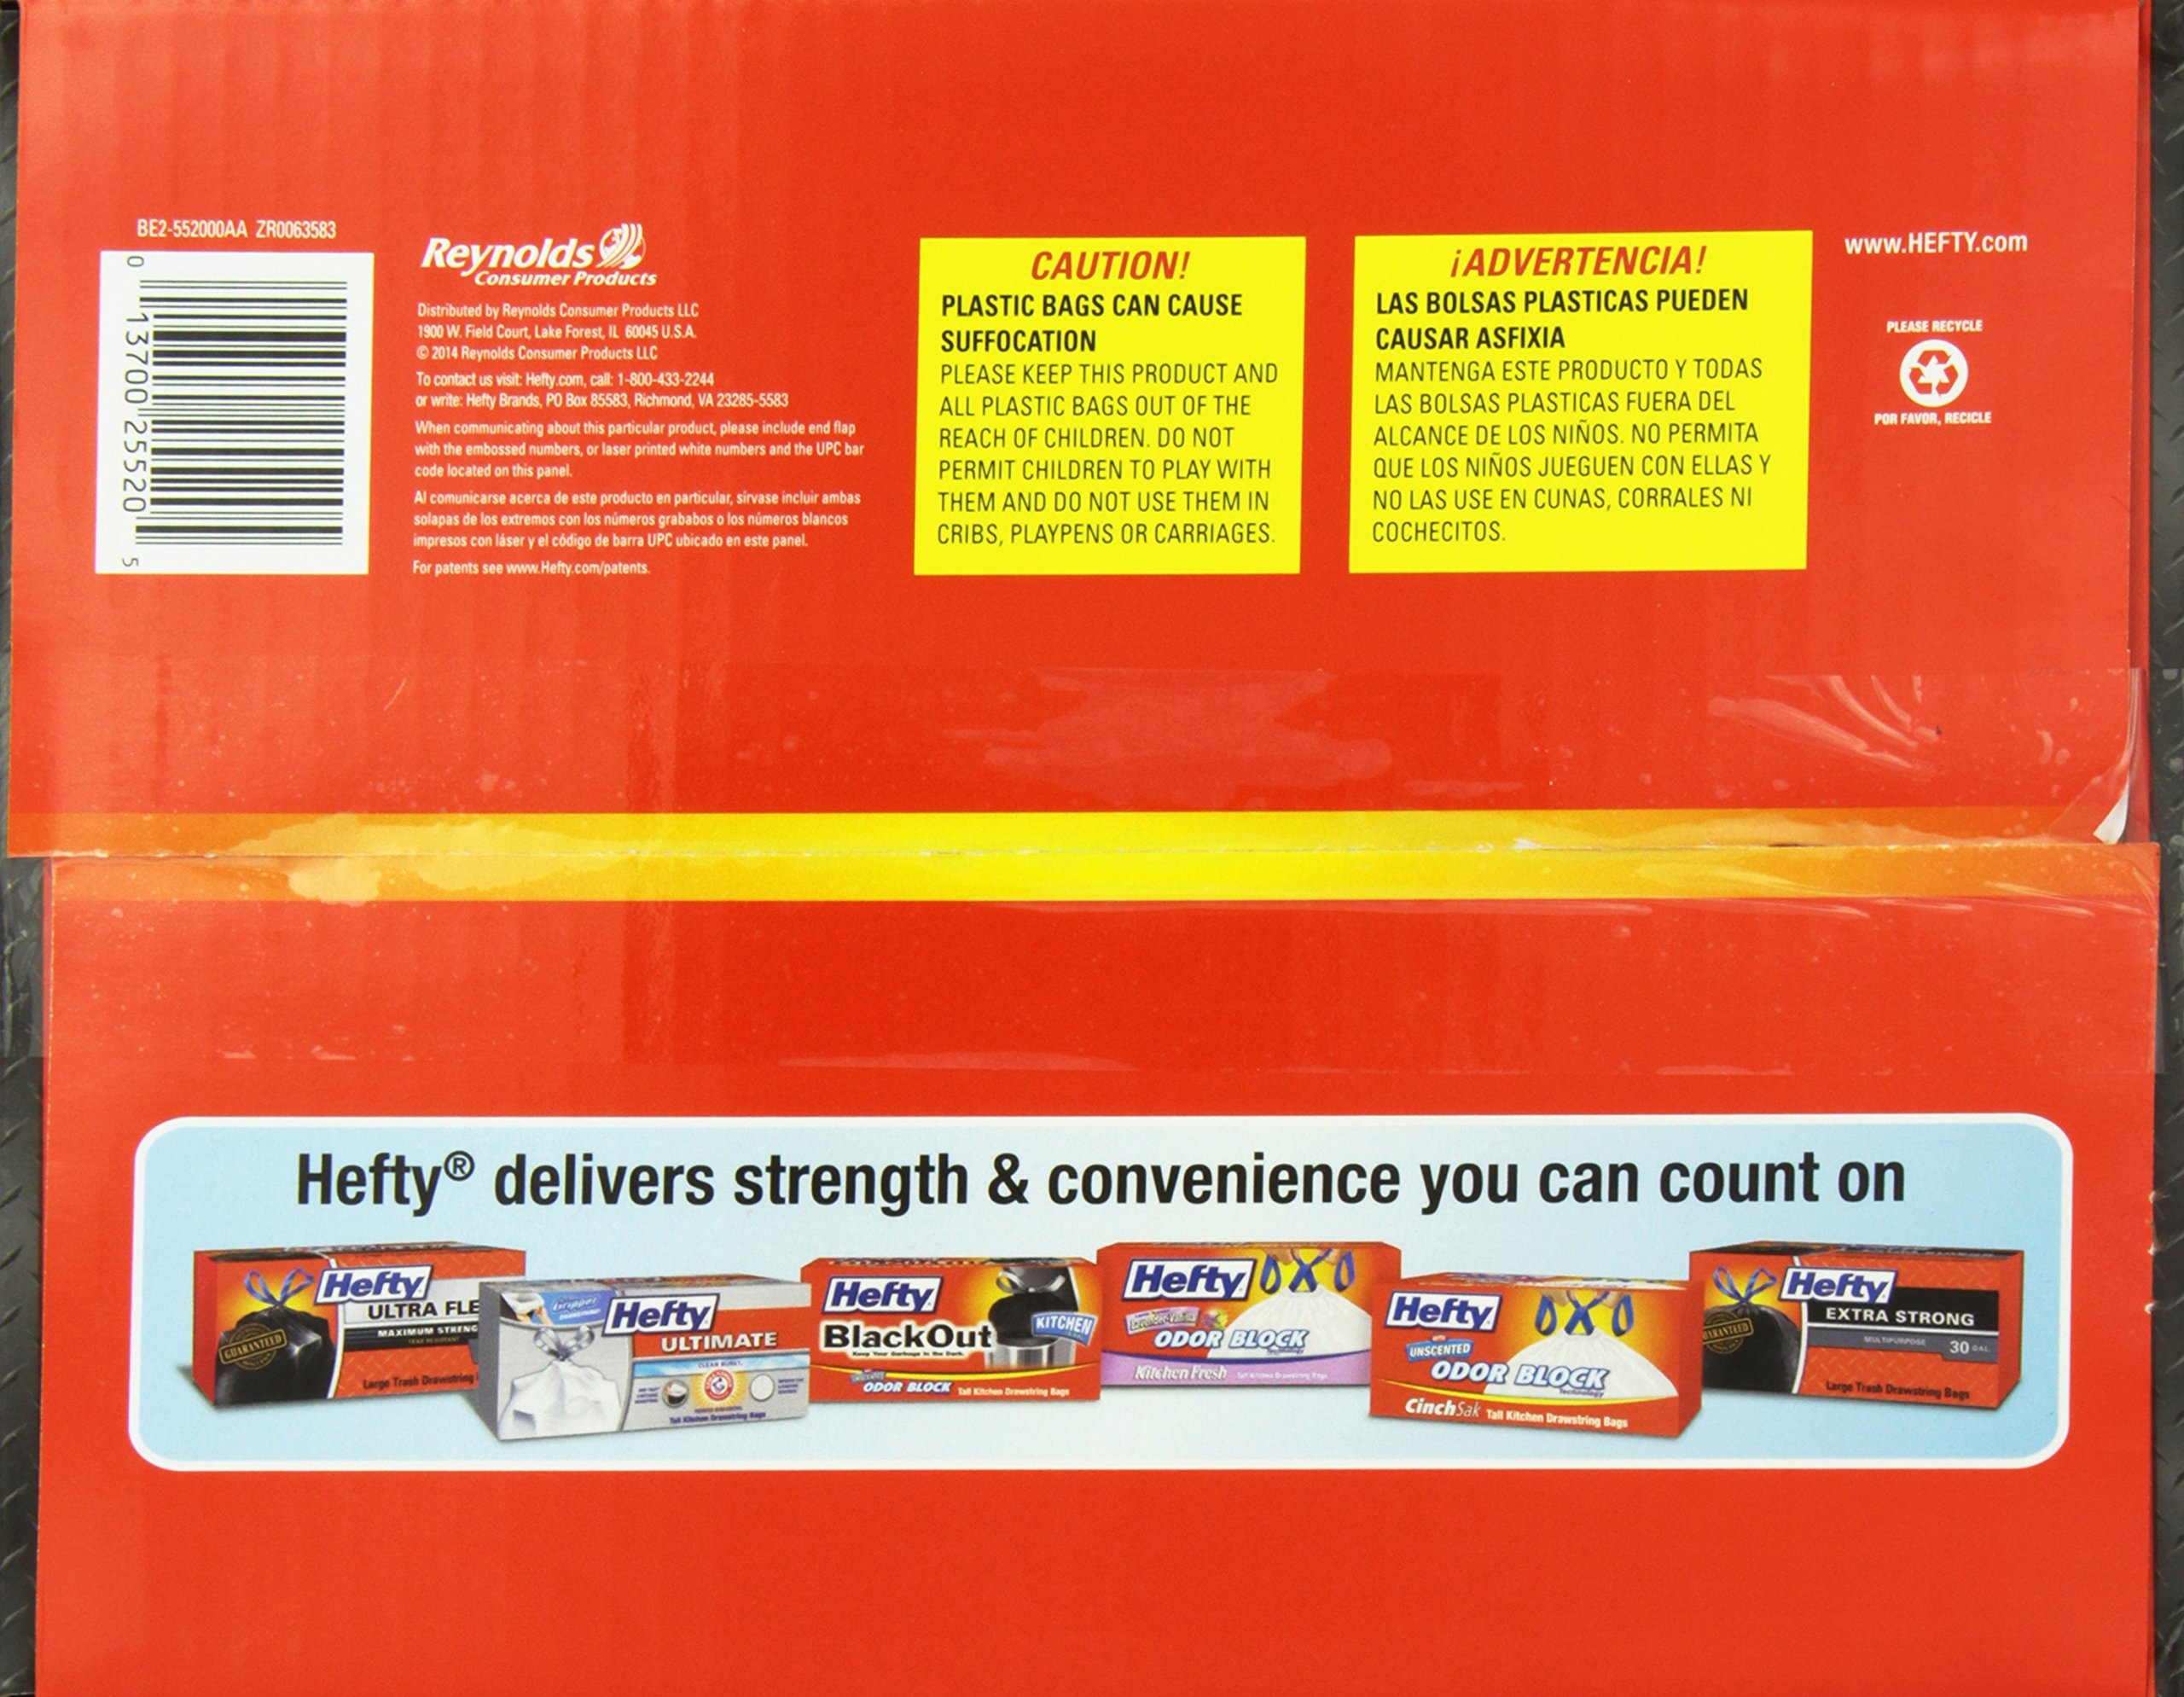 Hefty Heavy Duty Contractor Bags - 55 Gallon, 4 Packs of 18 Count (72 Total) by Hefty (Image #3)